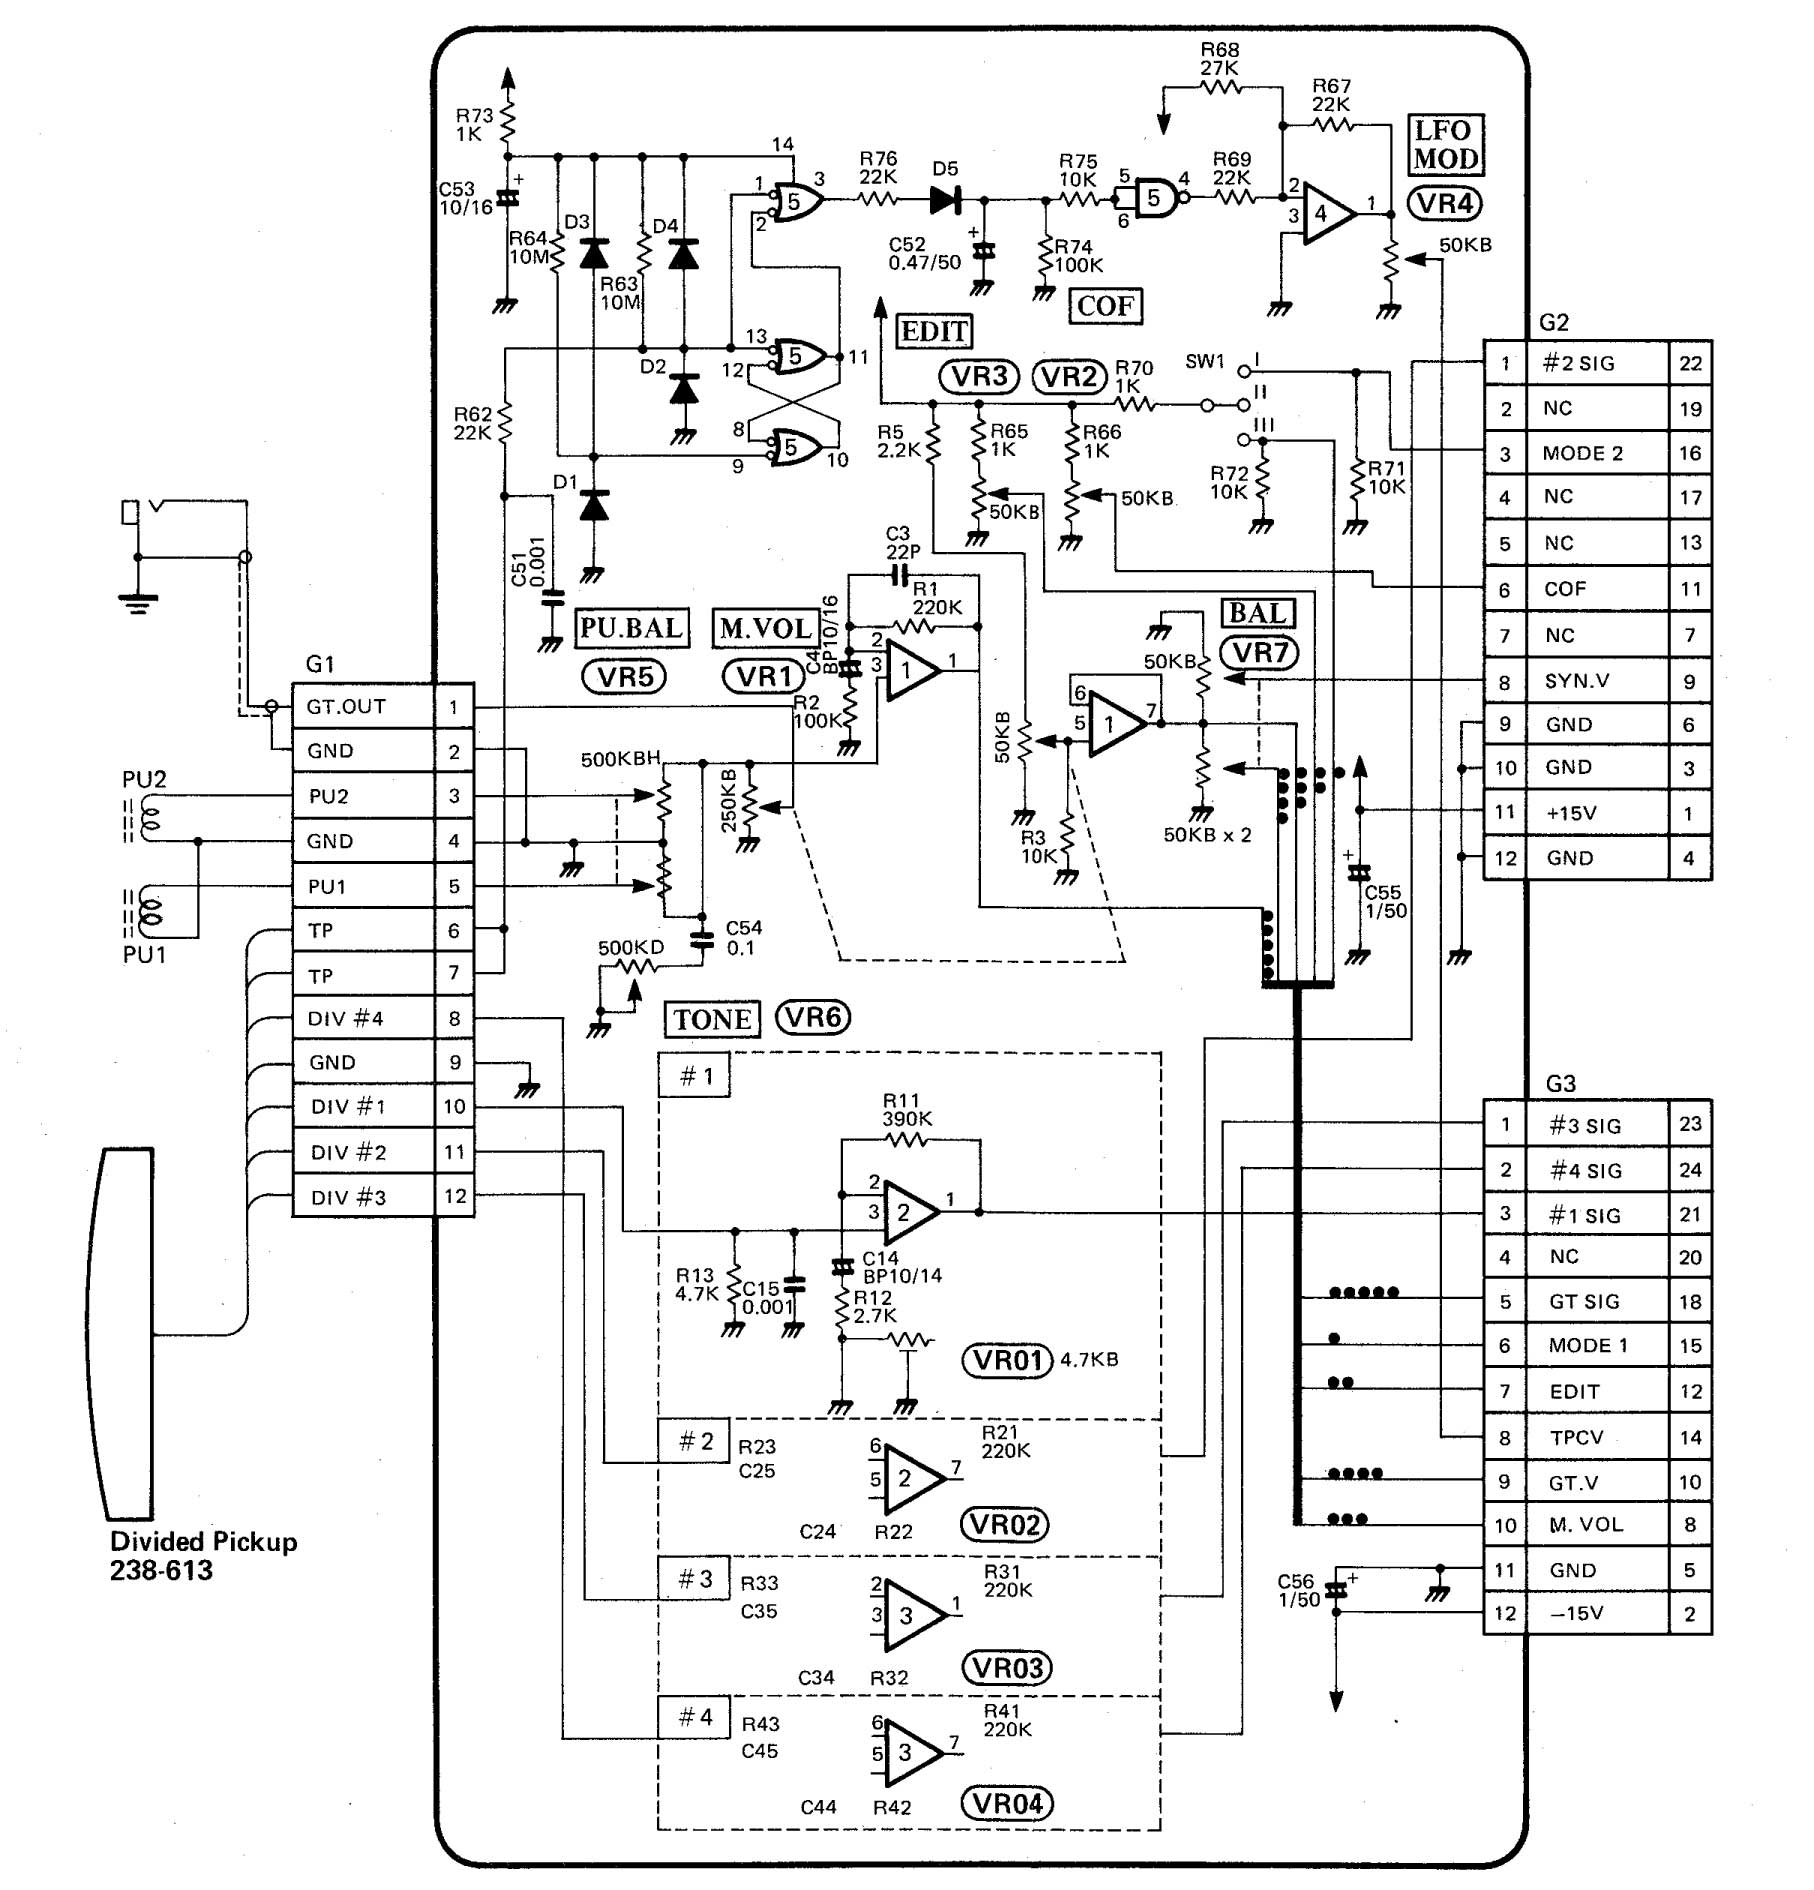 Honda Insight Fuse Box Electrical Wiring Diagrams Wiring